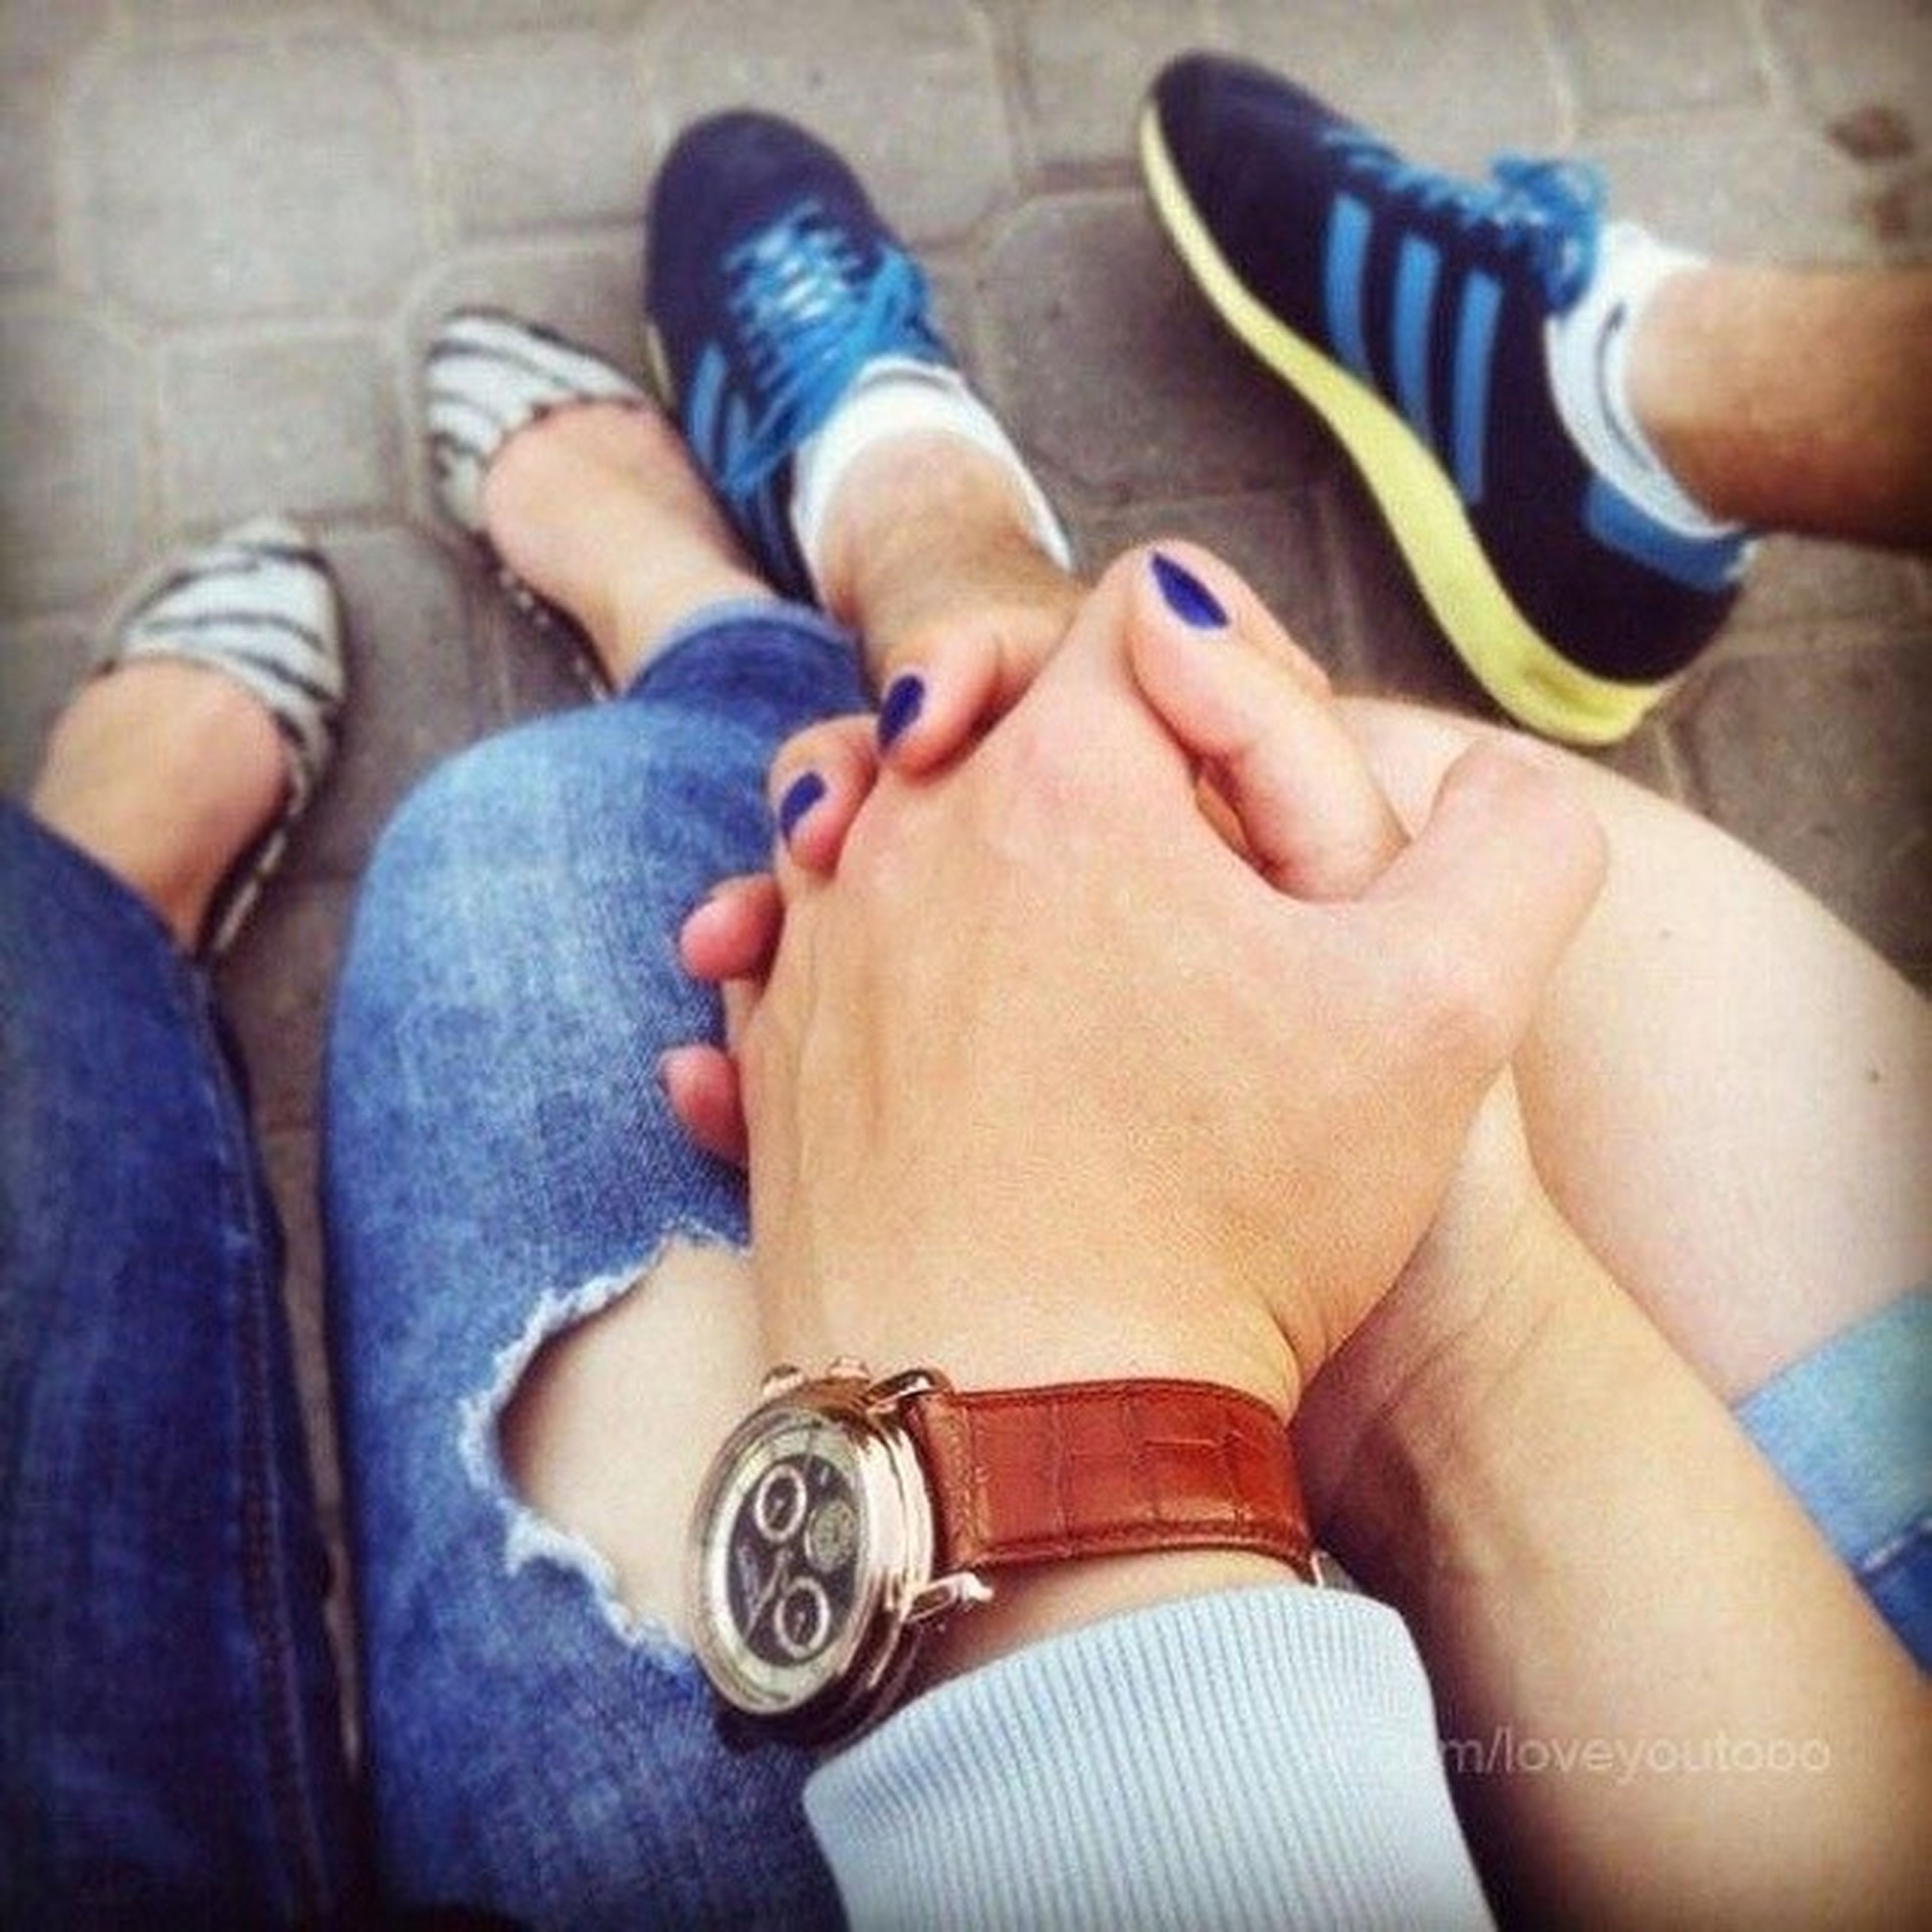 lifestyles, person, low section, leisure activity, togetherness, bonding, men, high angle view, childhood, indoors, casual clothing, love, sitting, boys, relaxation